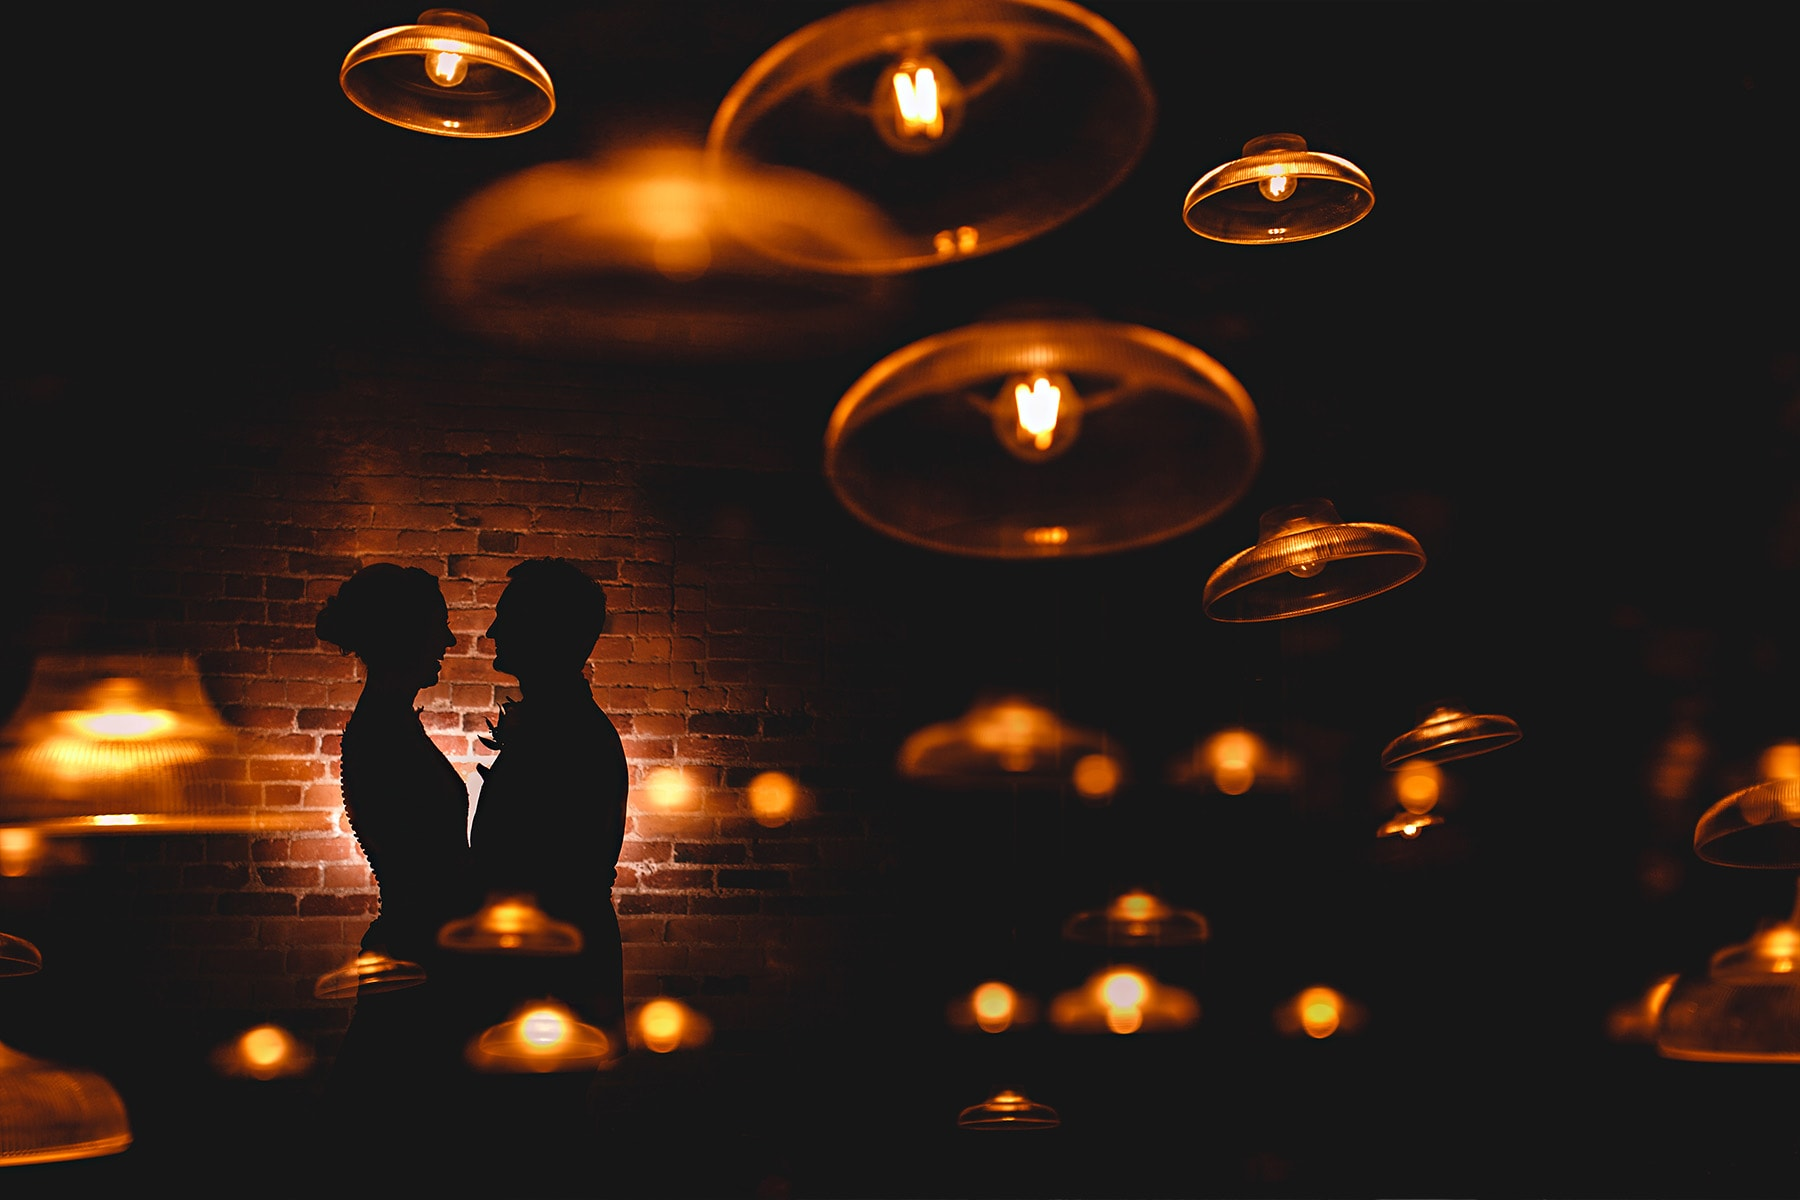 West Mill wedding photo of the bride and groom stood in orange lights